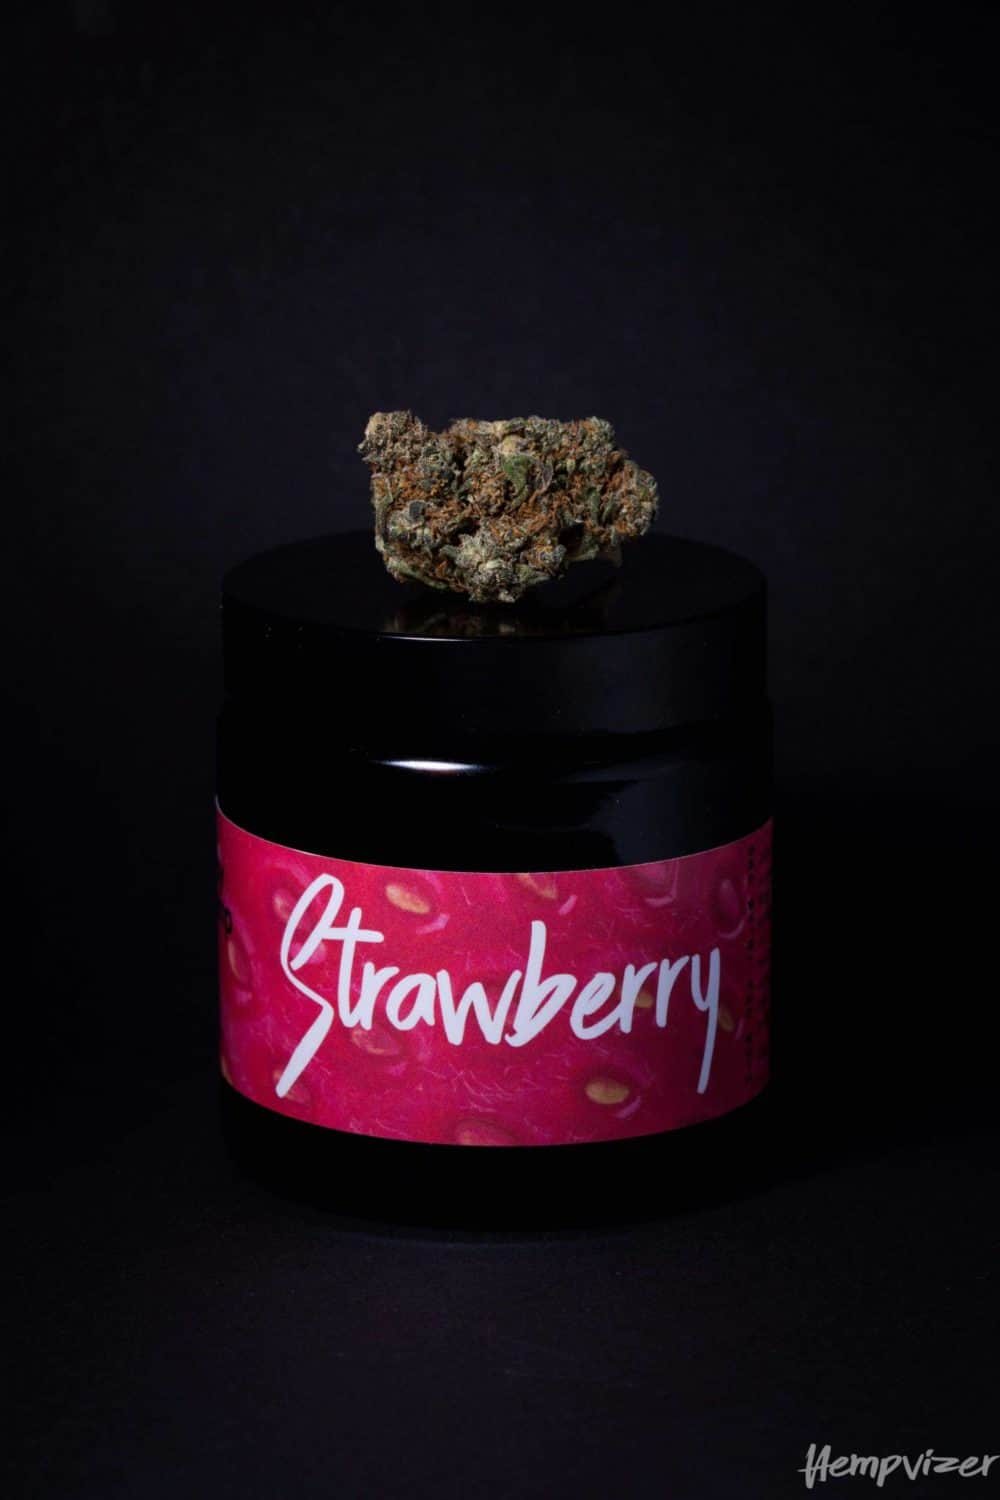 Fiori CBD Strawberry 3-6% CBD 4